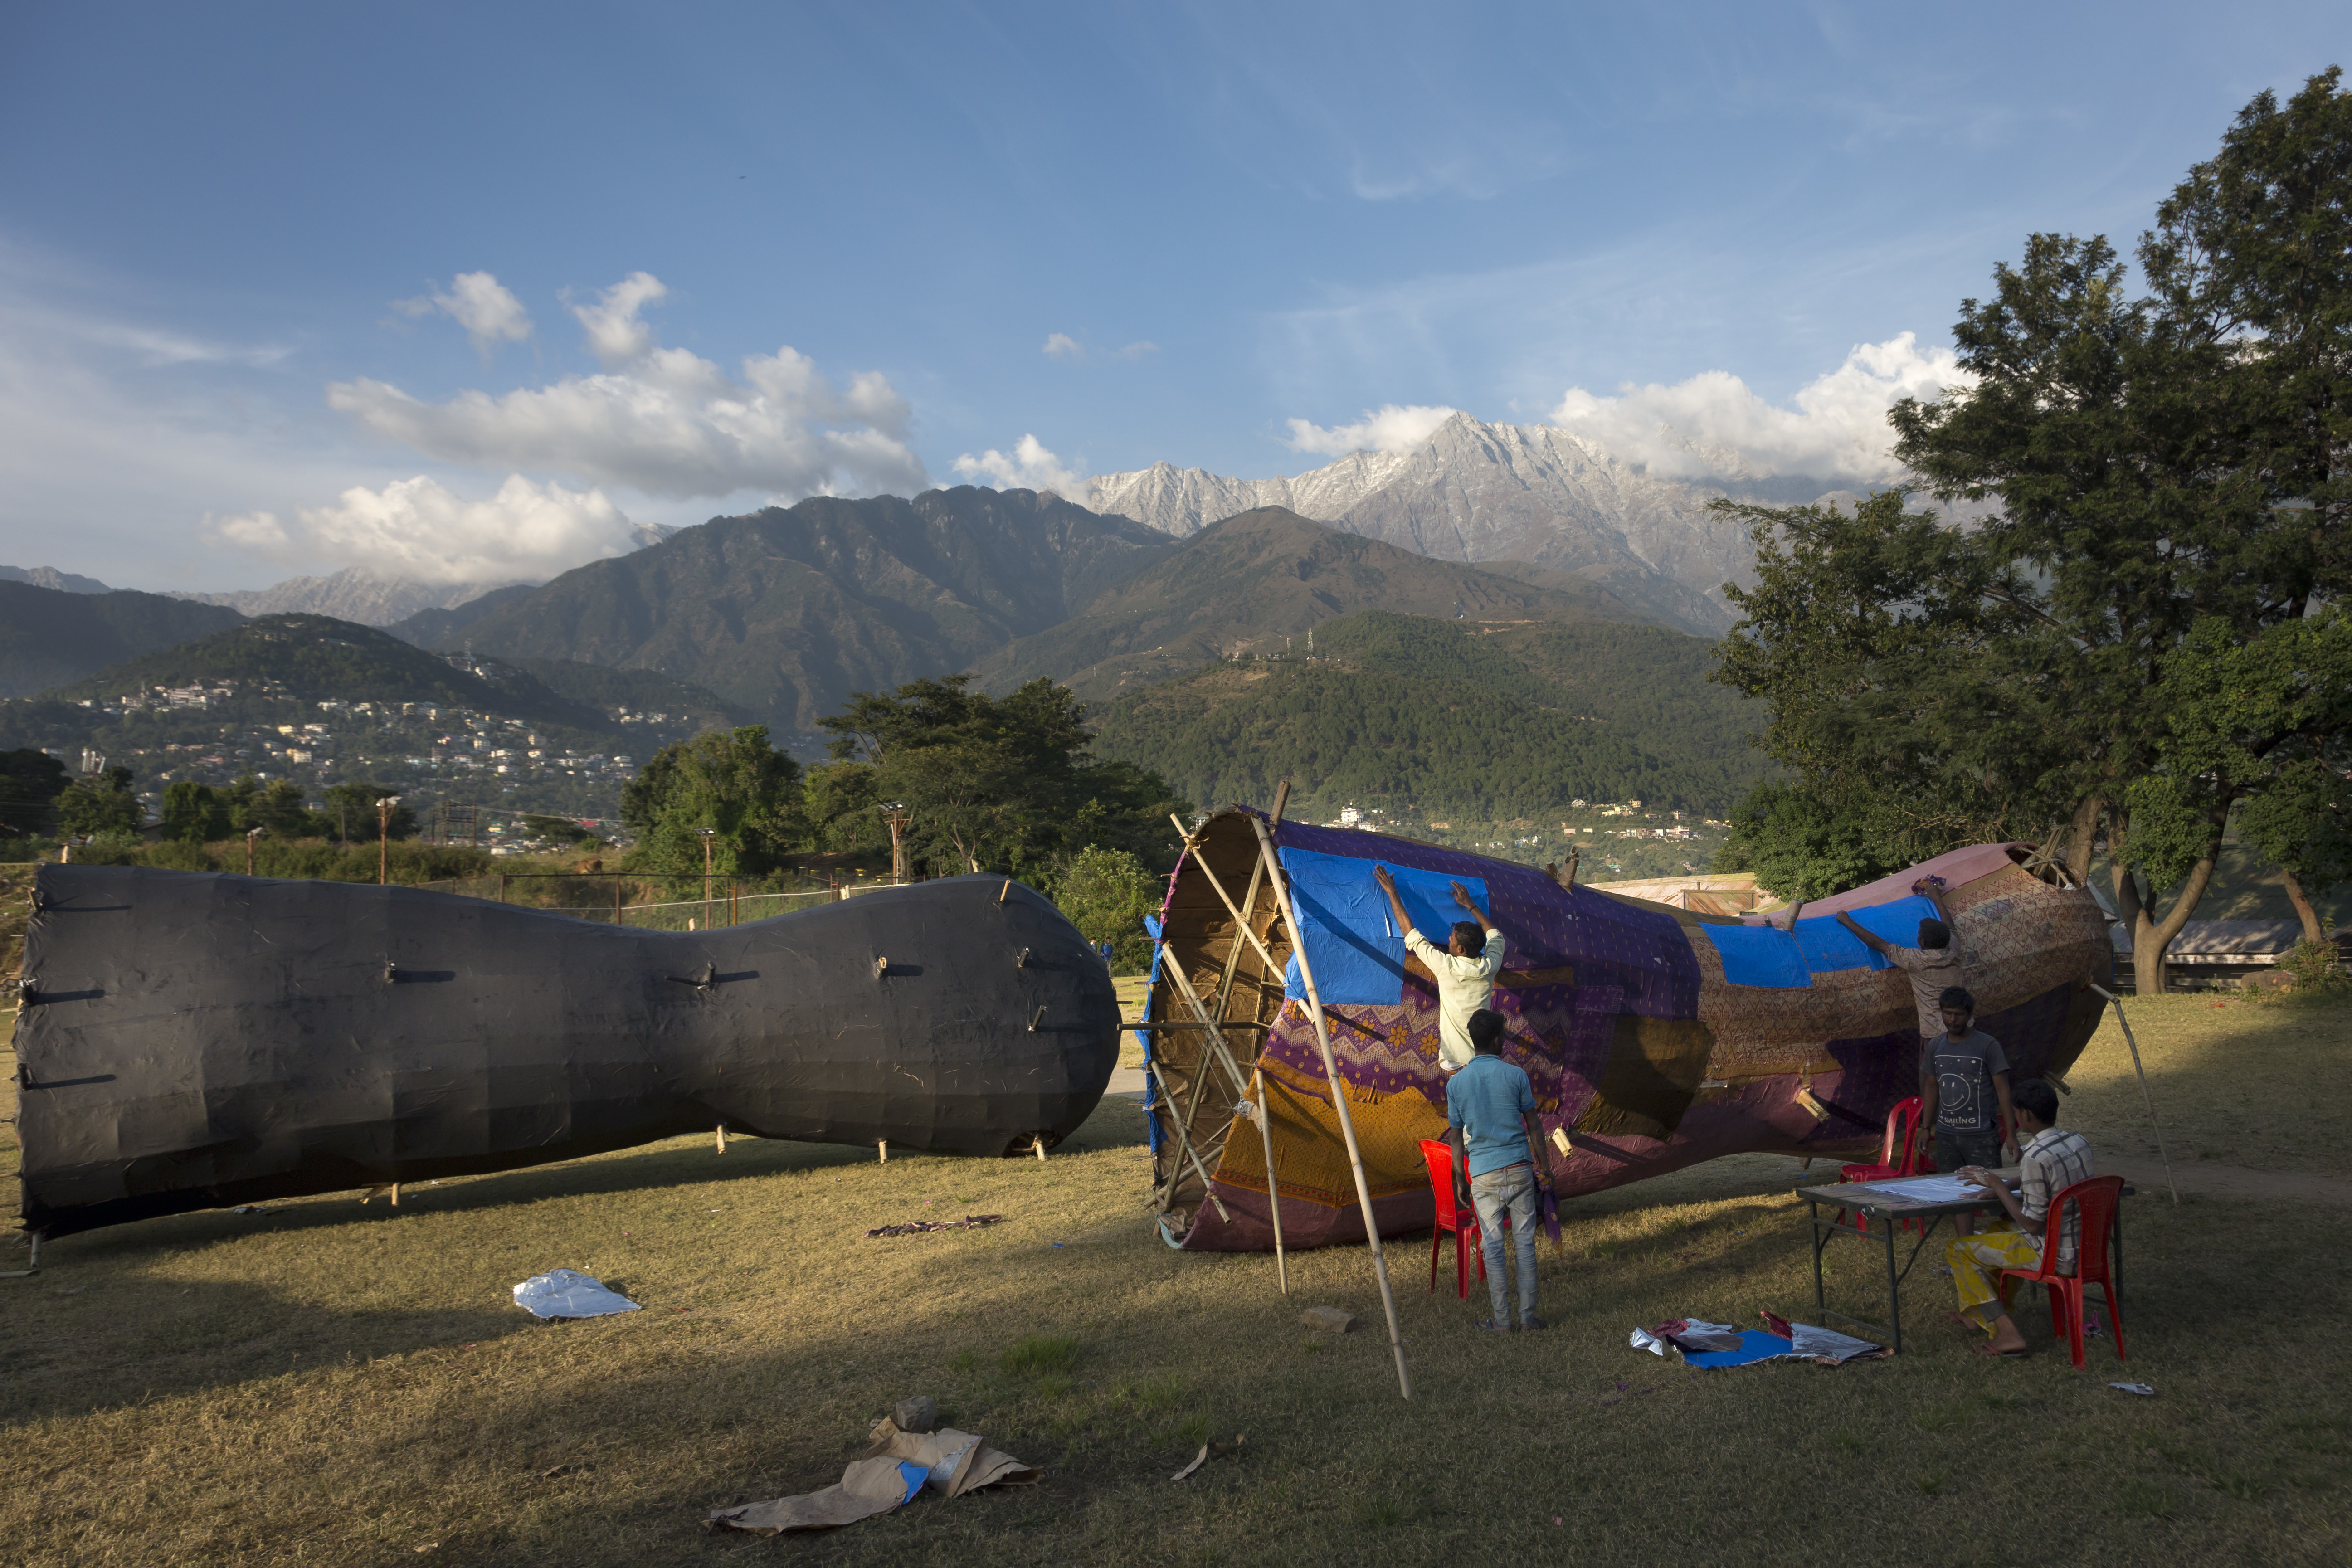 Artisans prepare an effigy for the upcoming Hindu festival Dussehra in Dharmsala, India - AP